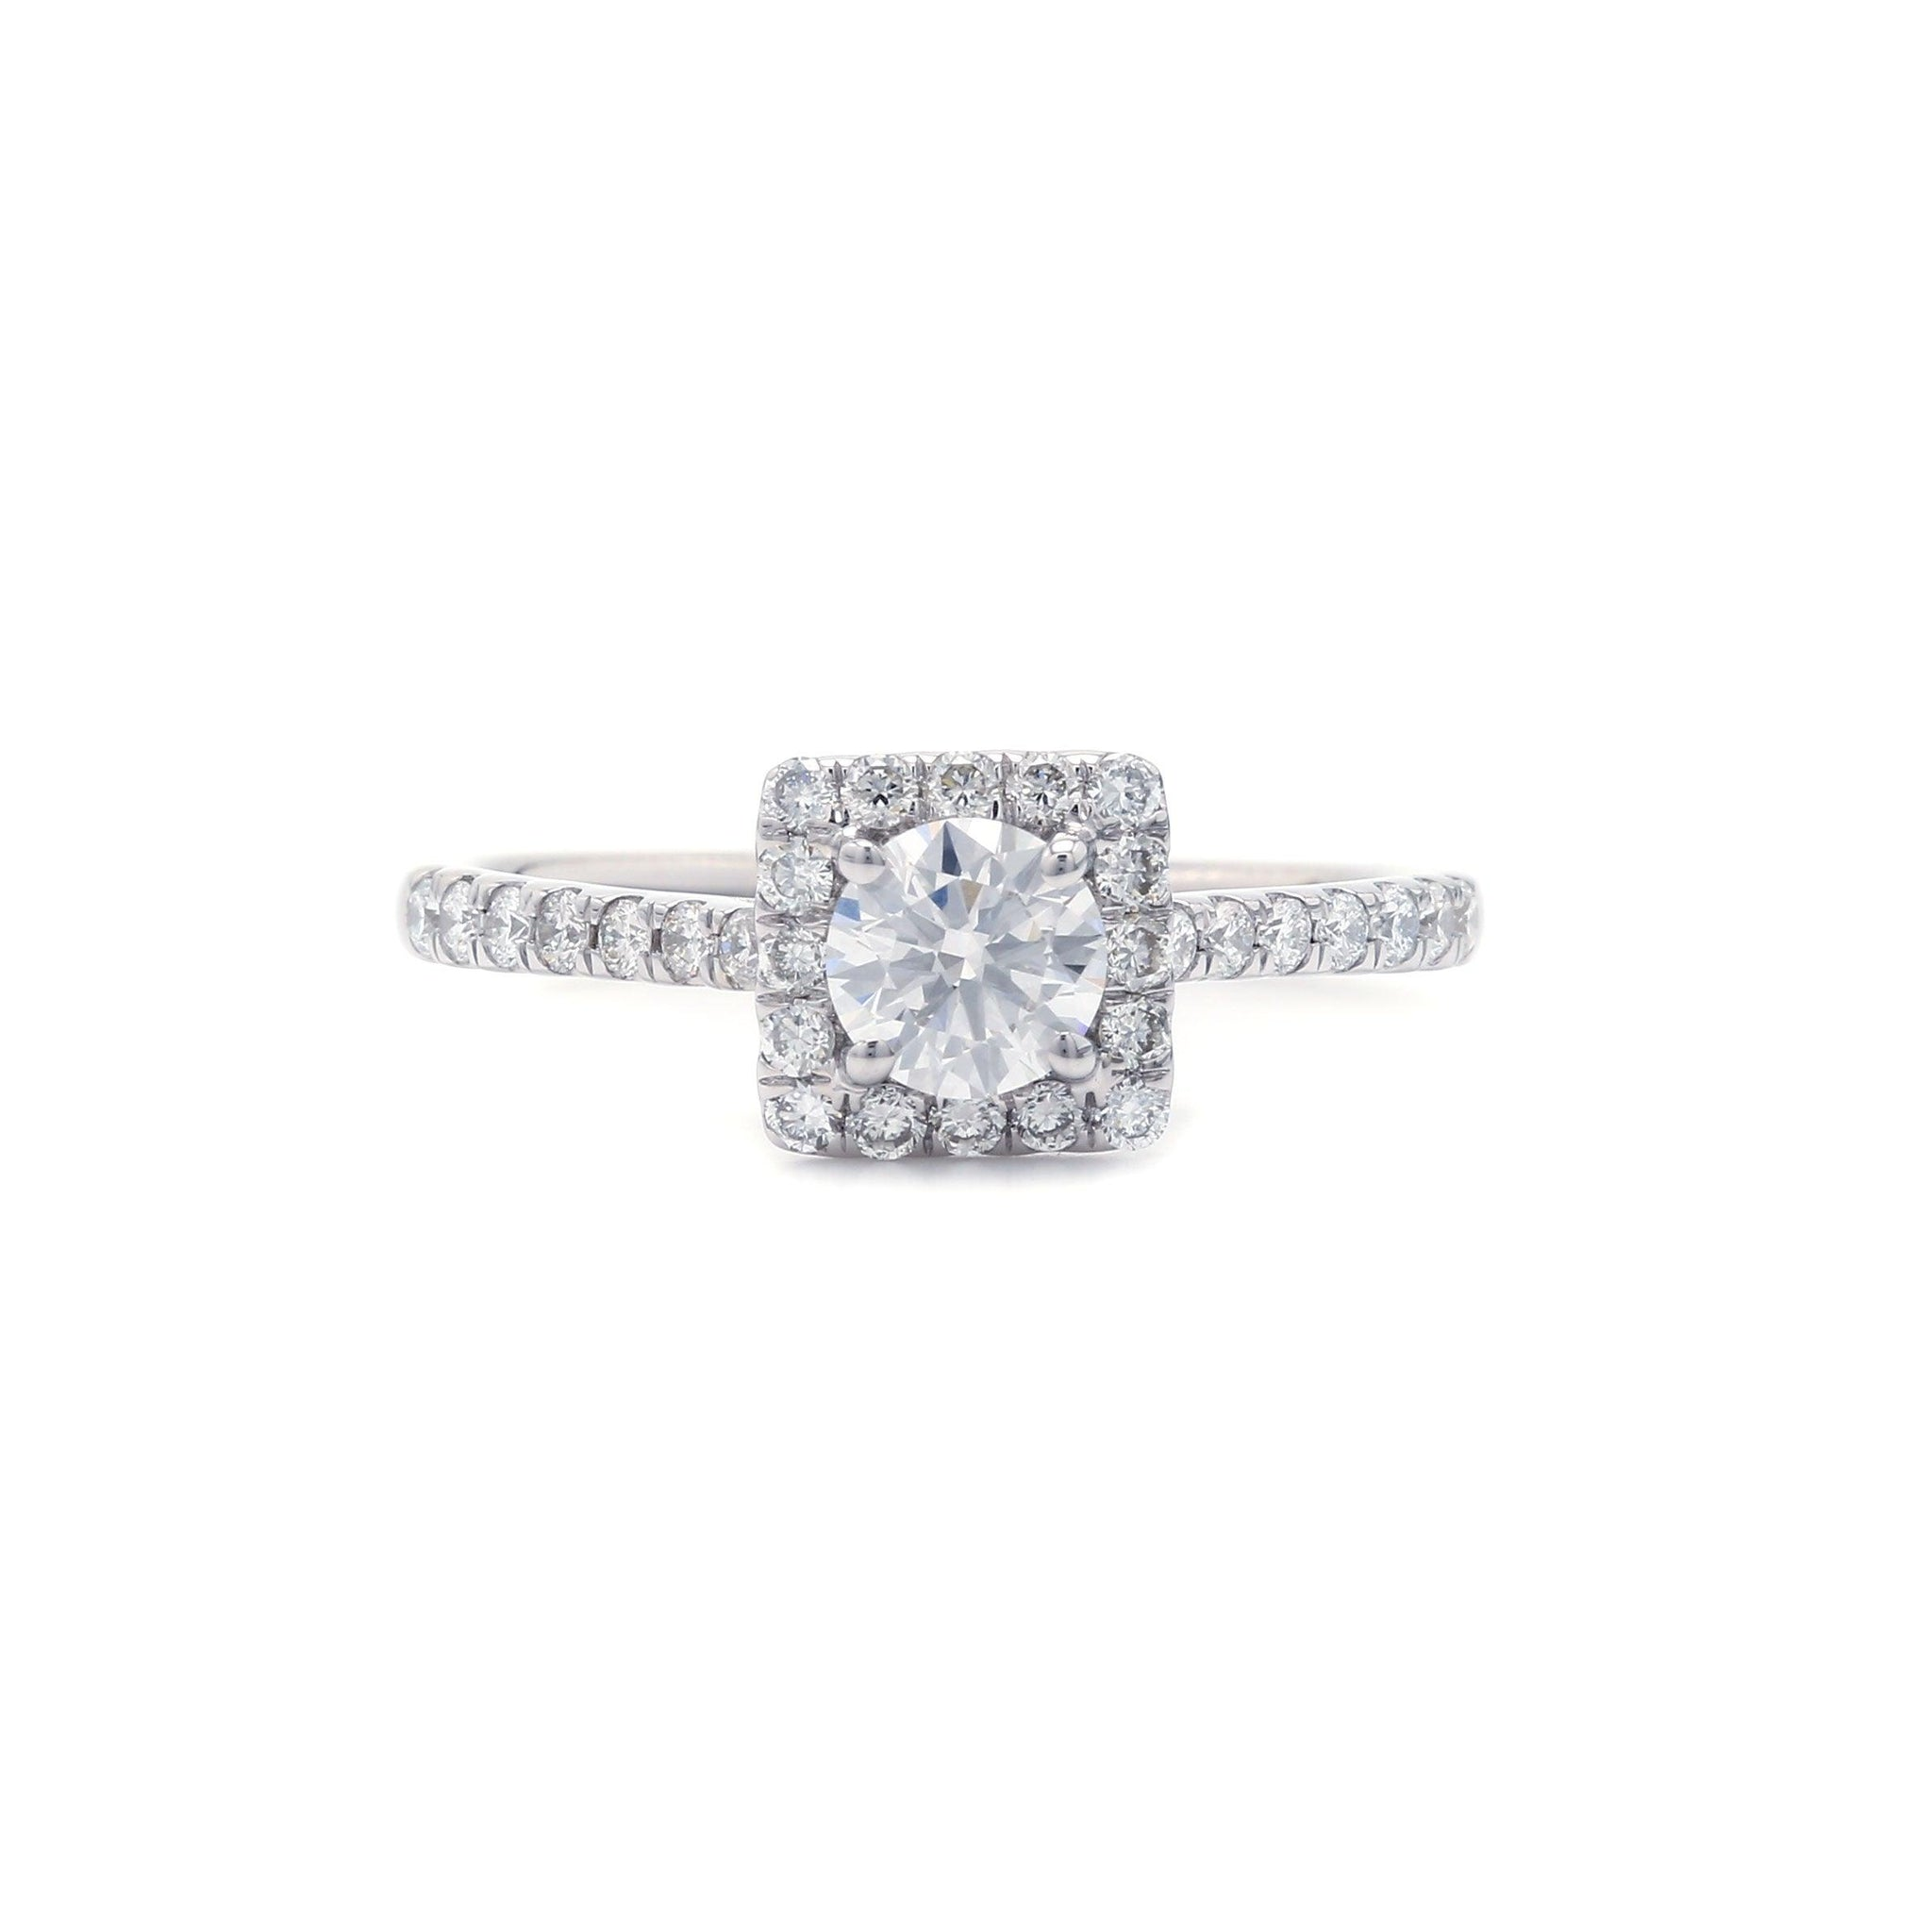 0.89 Ct. T.W. Lab-Grown IGI Certified Diamond 14K White Gold Ring (Center: 0.50 Ct. H VVS2)